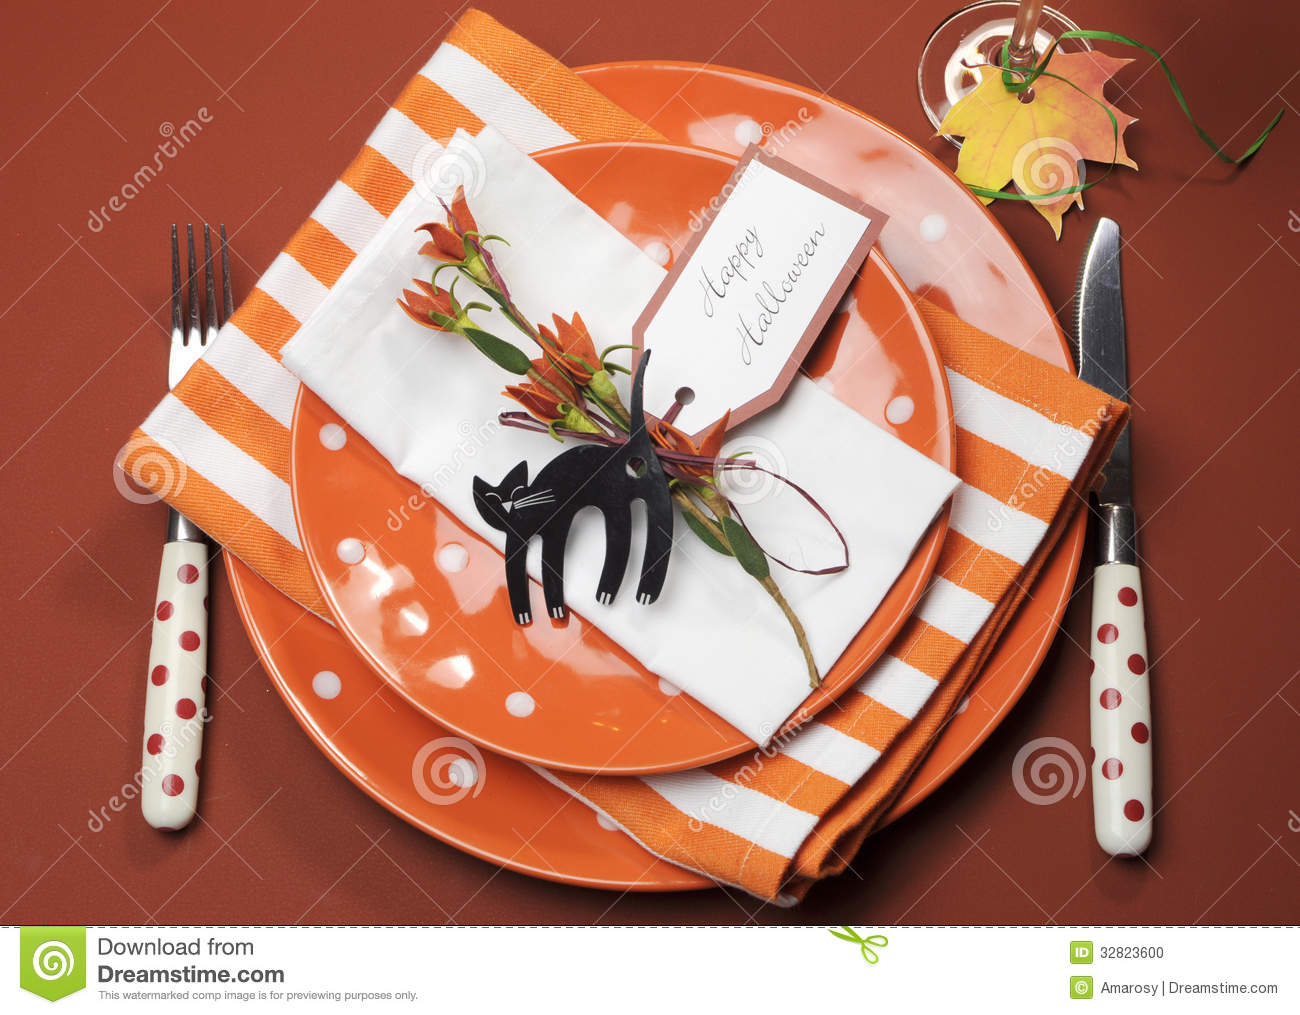 Halloween orange polka dot and stripes dinner table setting aerial